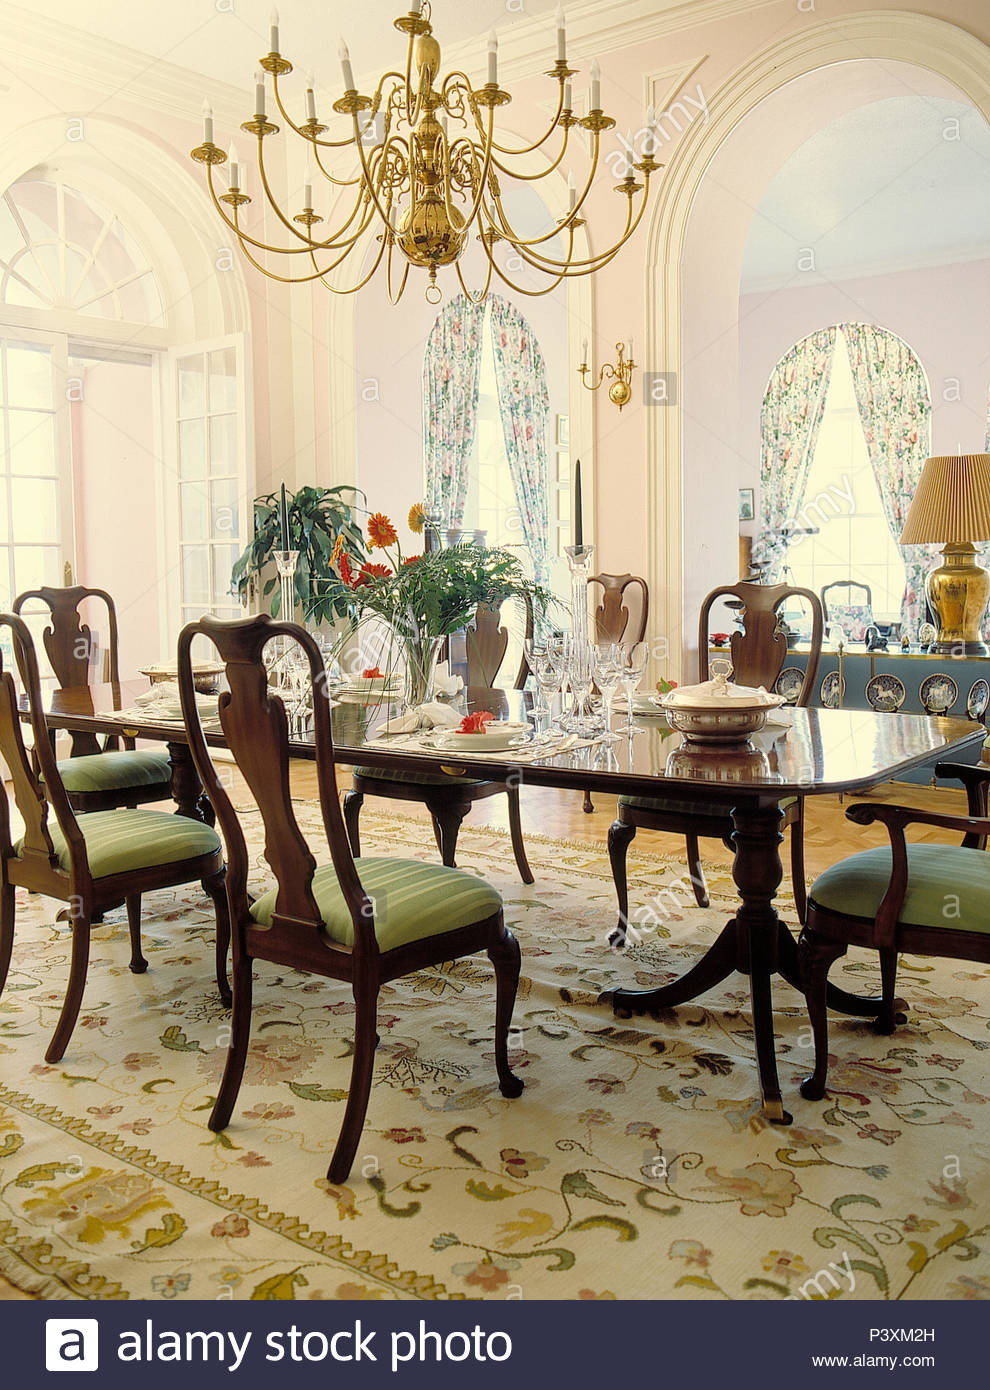 chandelier over antique mahogany dining table and chairs in opulent dining room with pale patterned rug P3XM2H